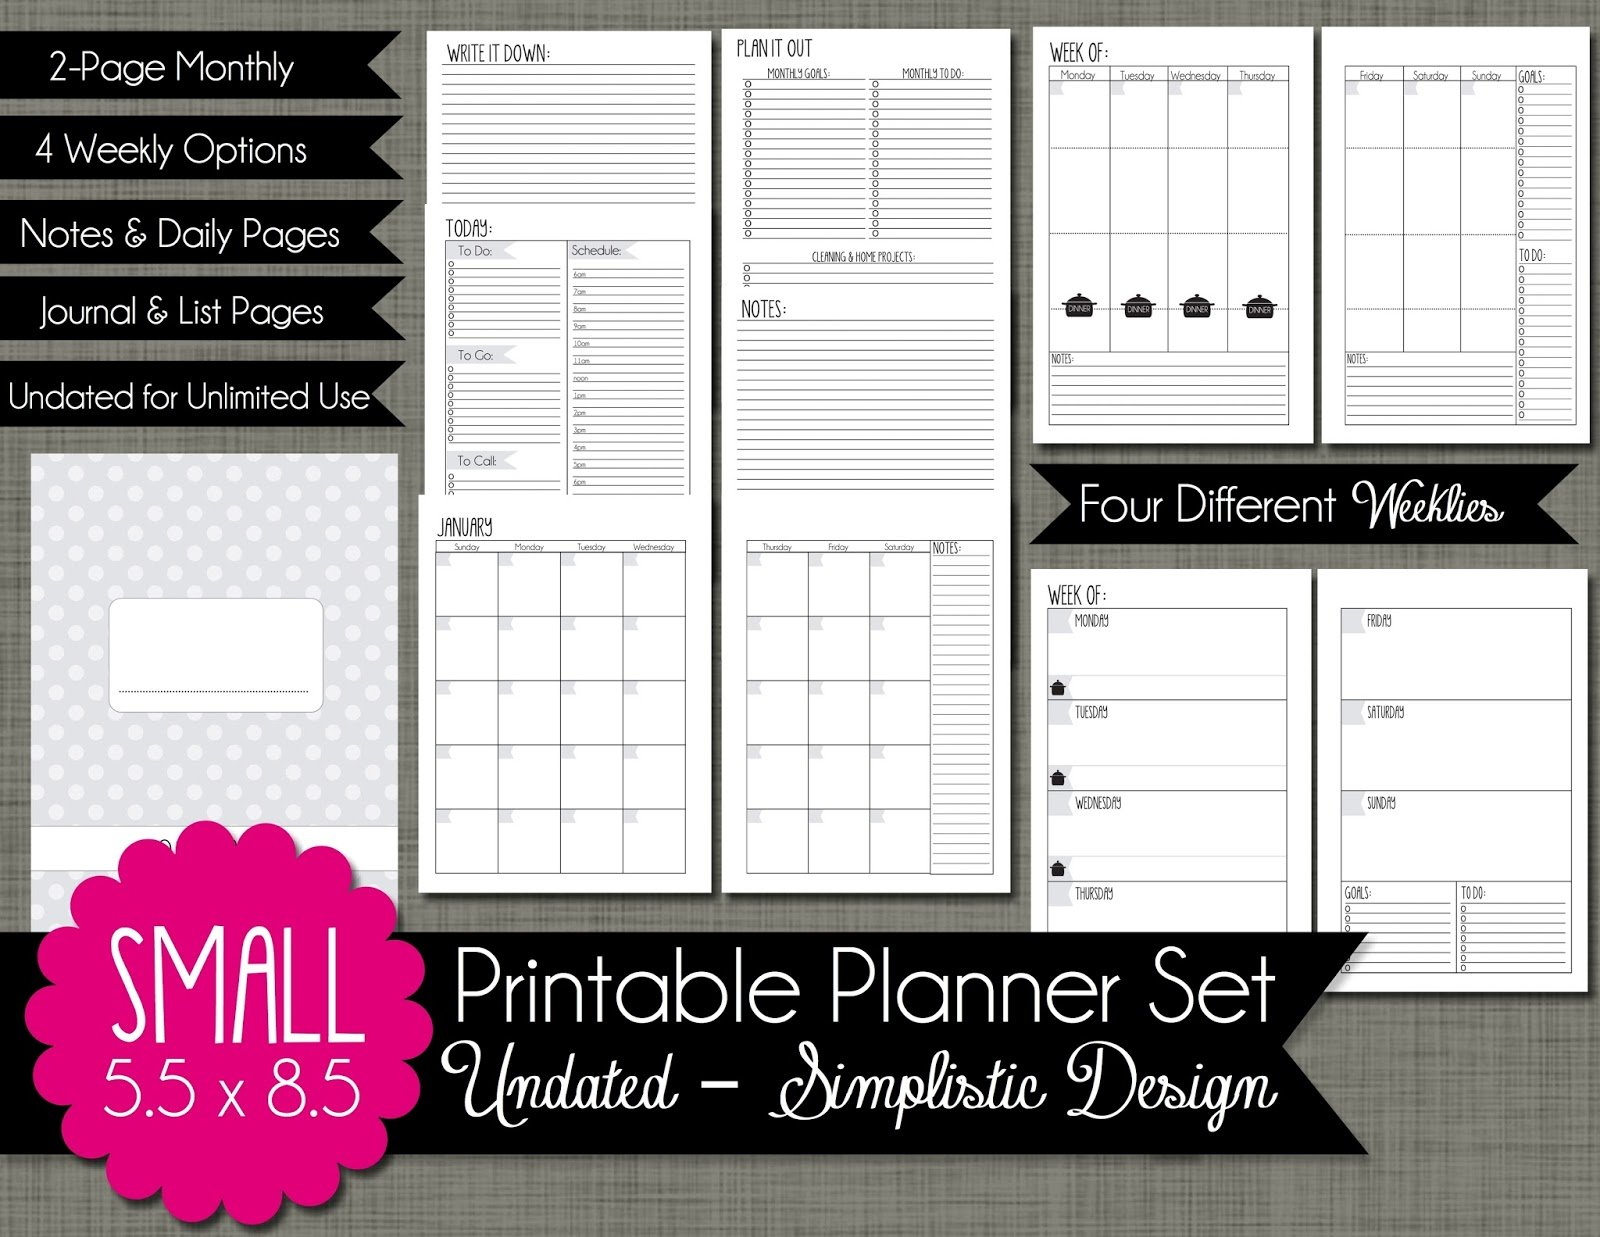 The Polka Dot Posie: How To Print & Assemble Our Small Printabel Planner Pages For 5.5 X 8.5 Planner